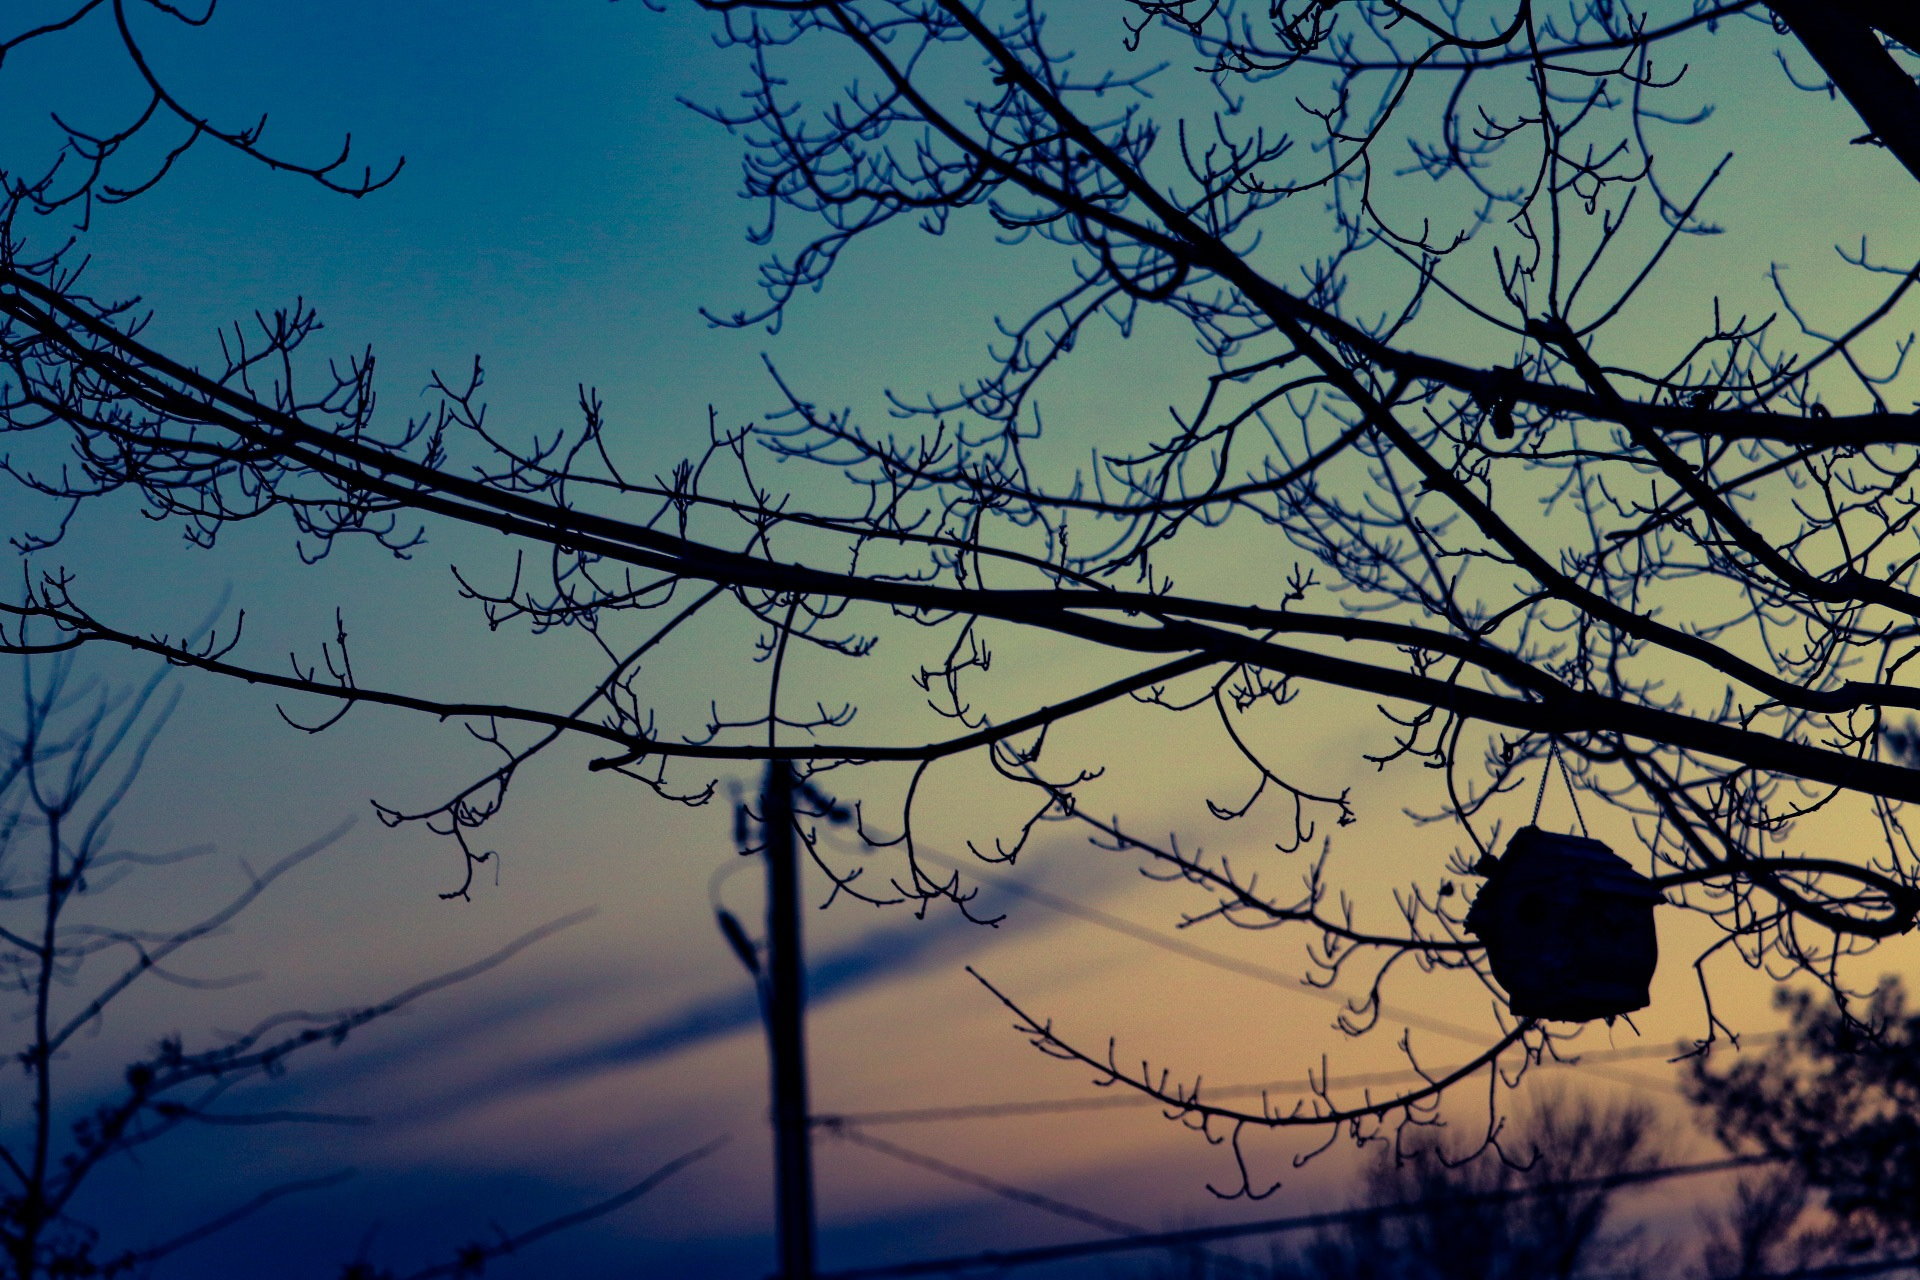 bird house & tree (sunset) by Jessica Dobscha